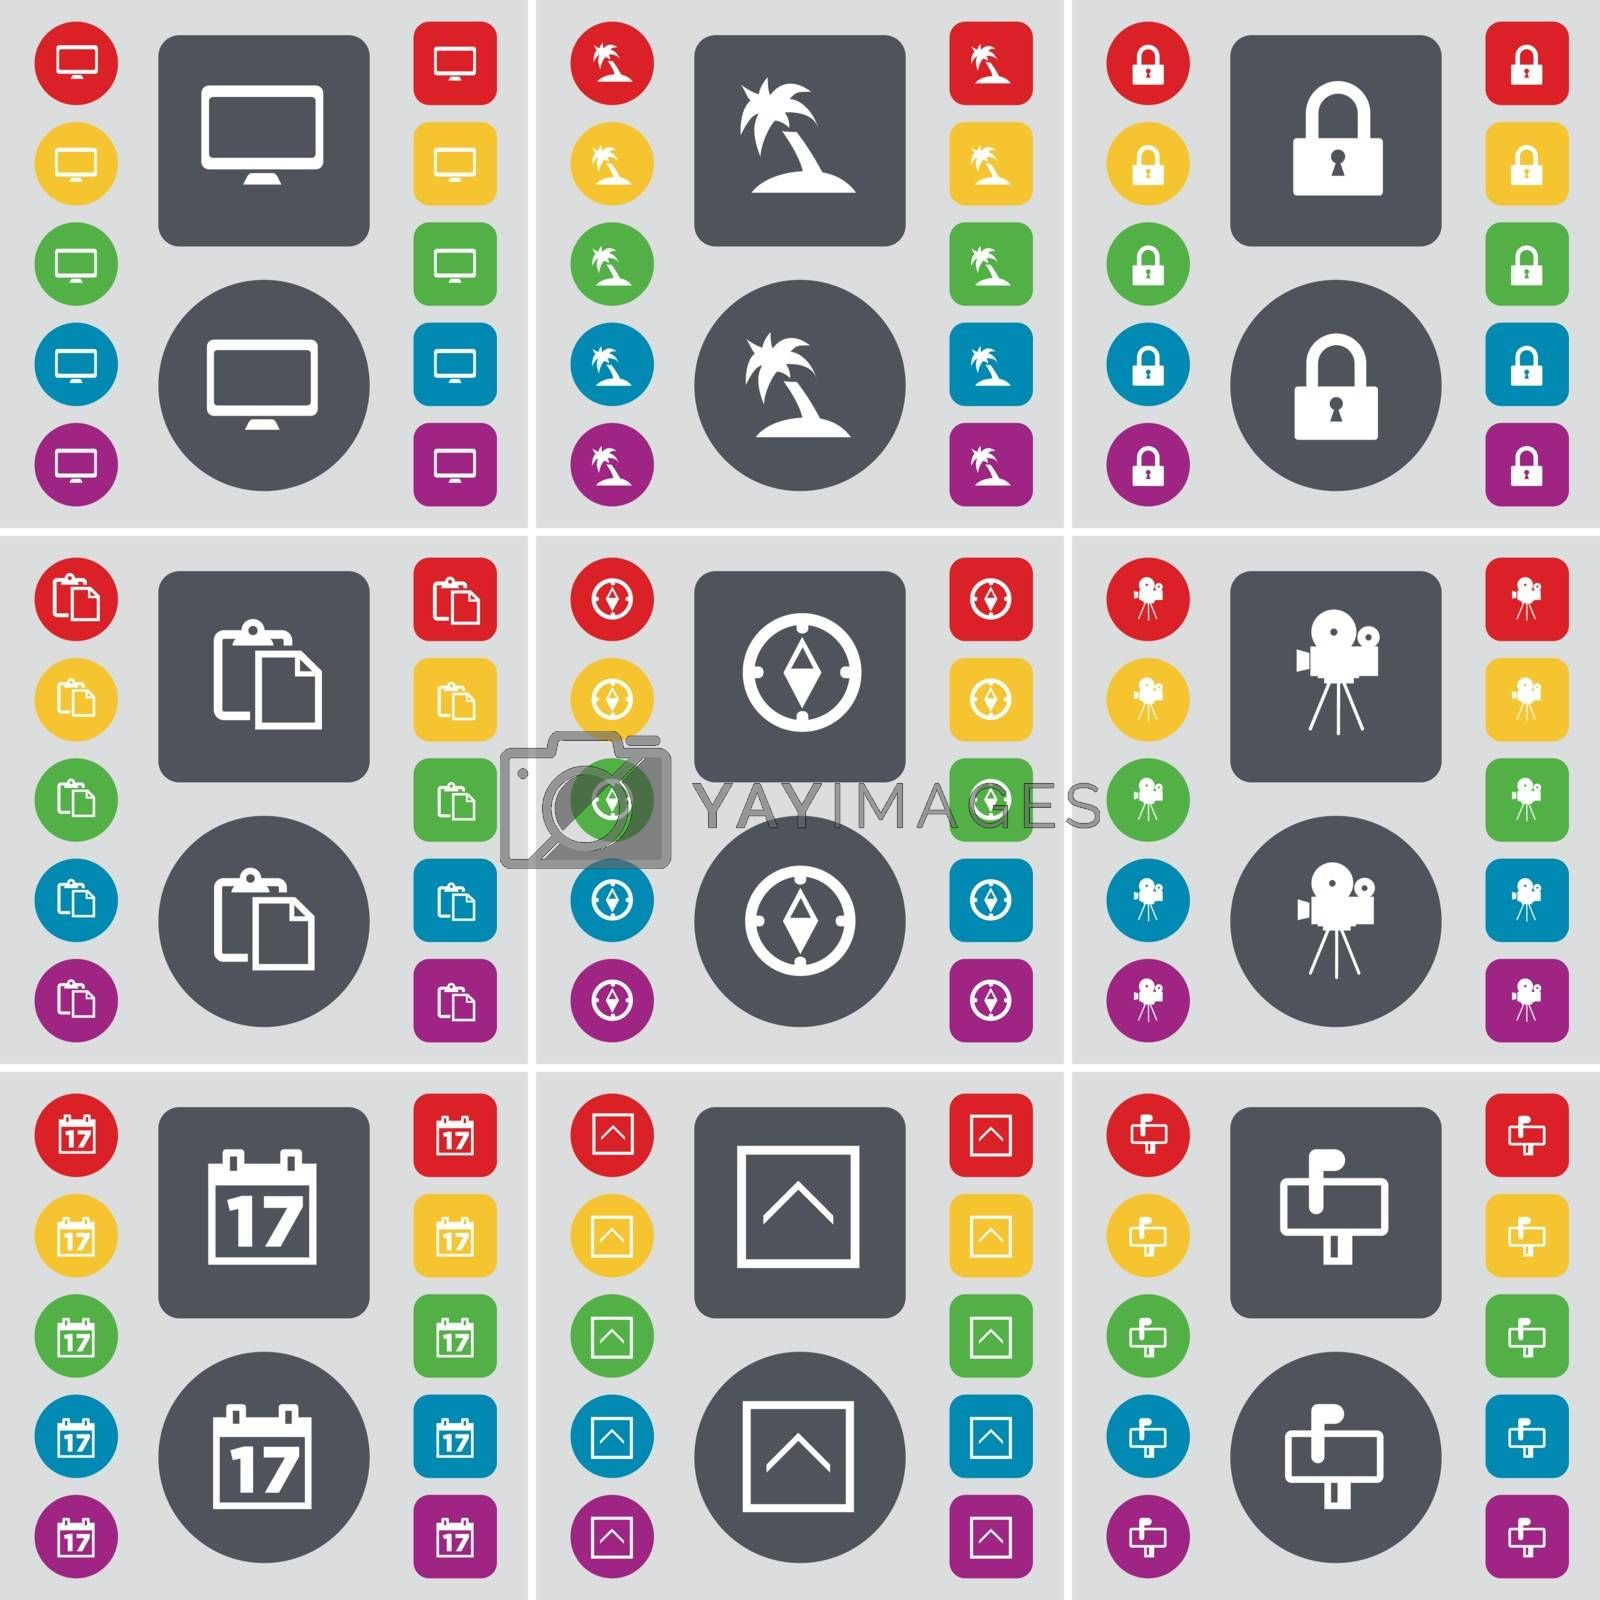 Royalty free image of Monitor, Palm, Lock, Survey, Compass, Film camera, Calendar, Arrow up, Mailbox icon symbol. A large set of flat, colored buttons for your design. Vector by serhii_lohvyniuk